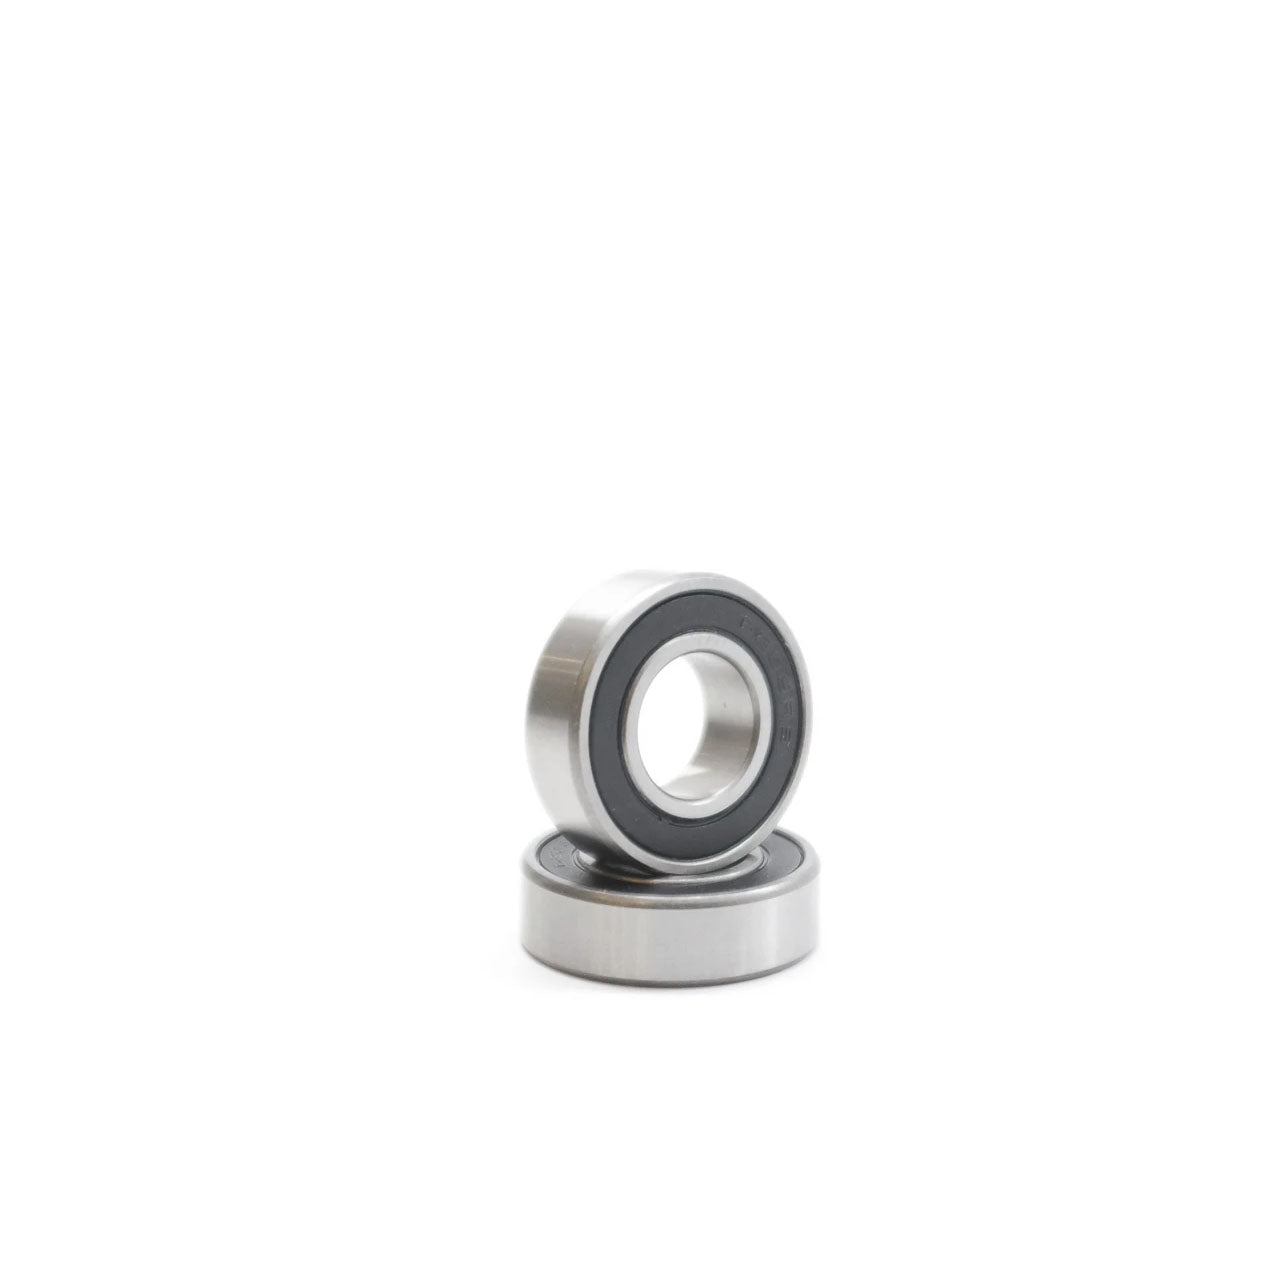 "3/4"" Spool Wheel Bearings - MC Parts - Prism Supply"